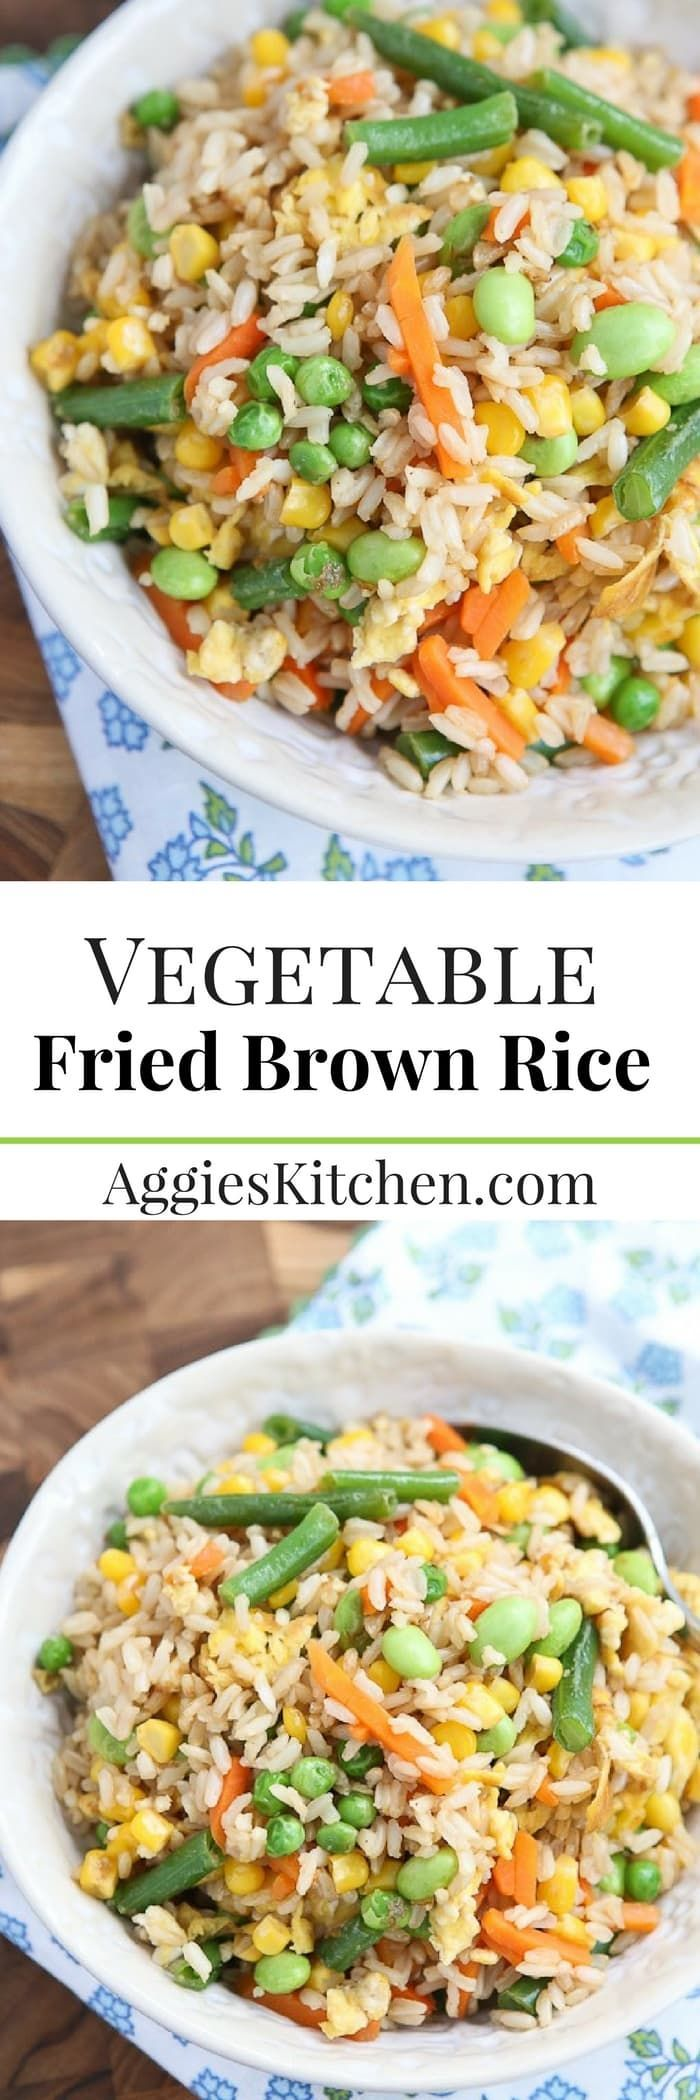 Healthy and quick, this Vegetable Fried Brown Rice comes together with just 5 ingredients. Great for meatless Mondays or busy school nights. via @aggieskitchen